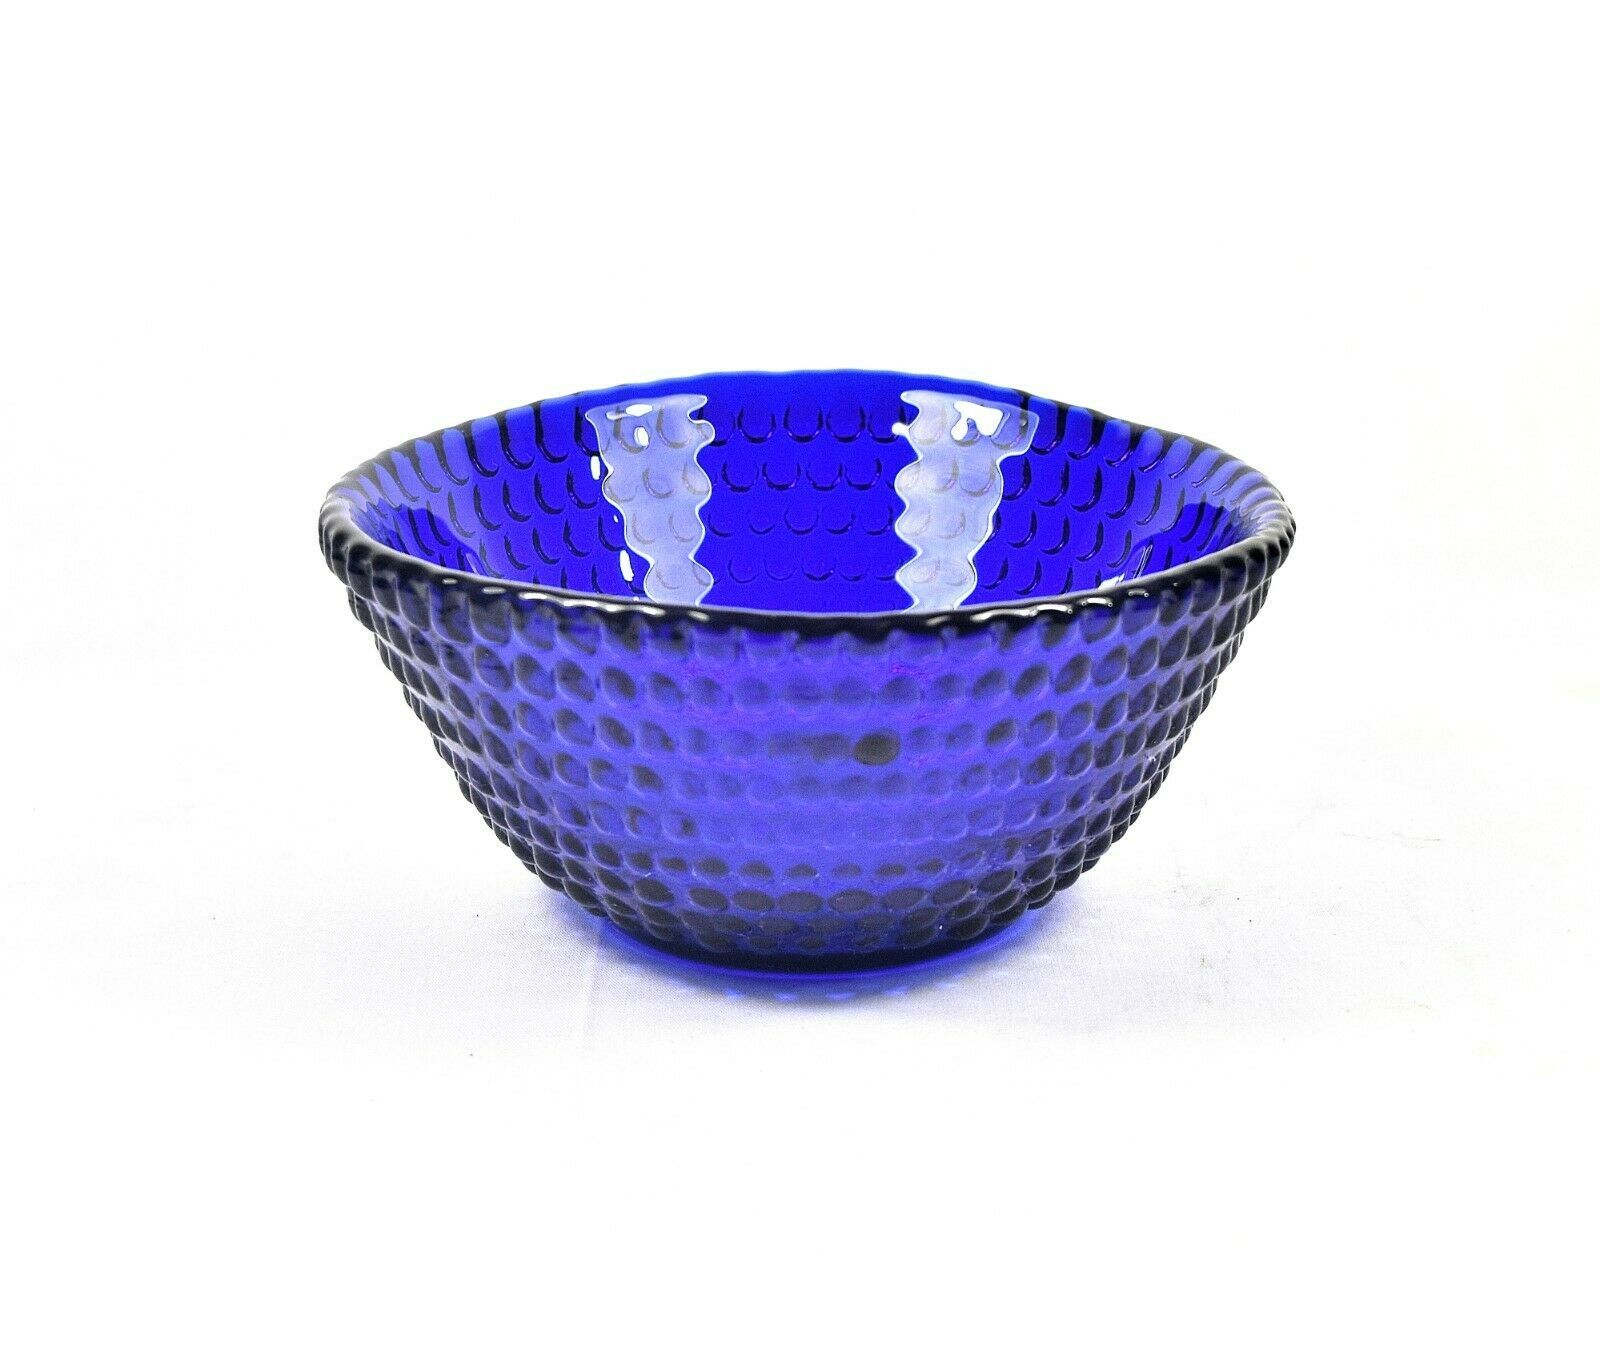 Handmade Cobalt Blue Hobnail Glass Bowl by Blenko – Signed by Richard Blenko - $35.18